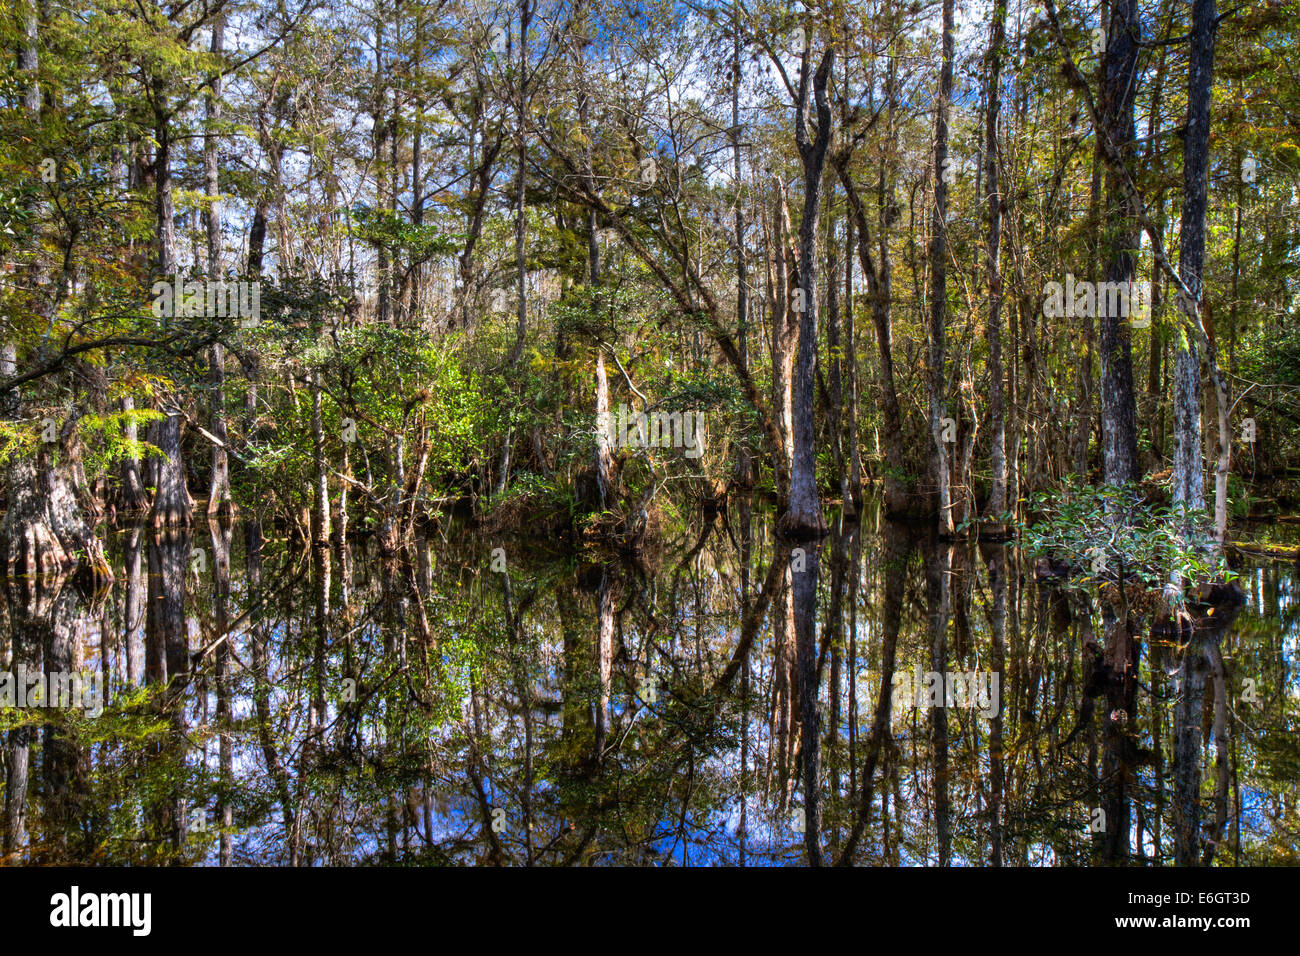 Cypress of the Everglades reflecting in a swamp, Florida, USA - Stock Image